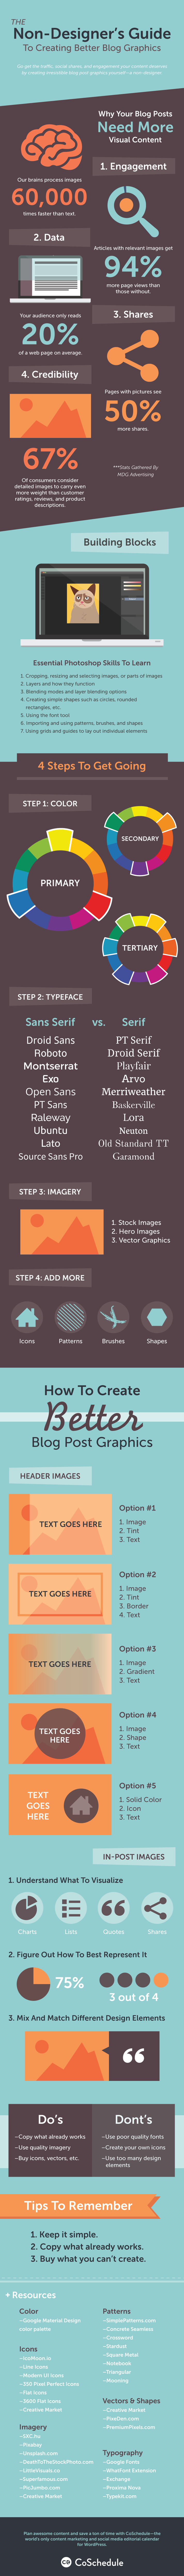 how-to-create-better-blog-graphics-infographic